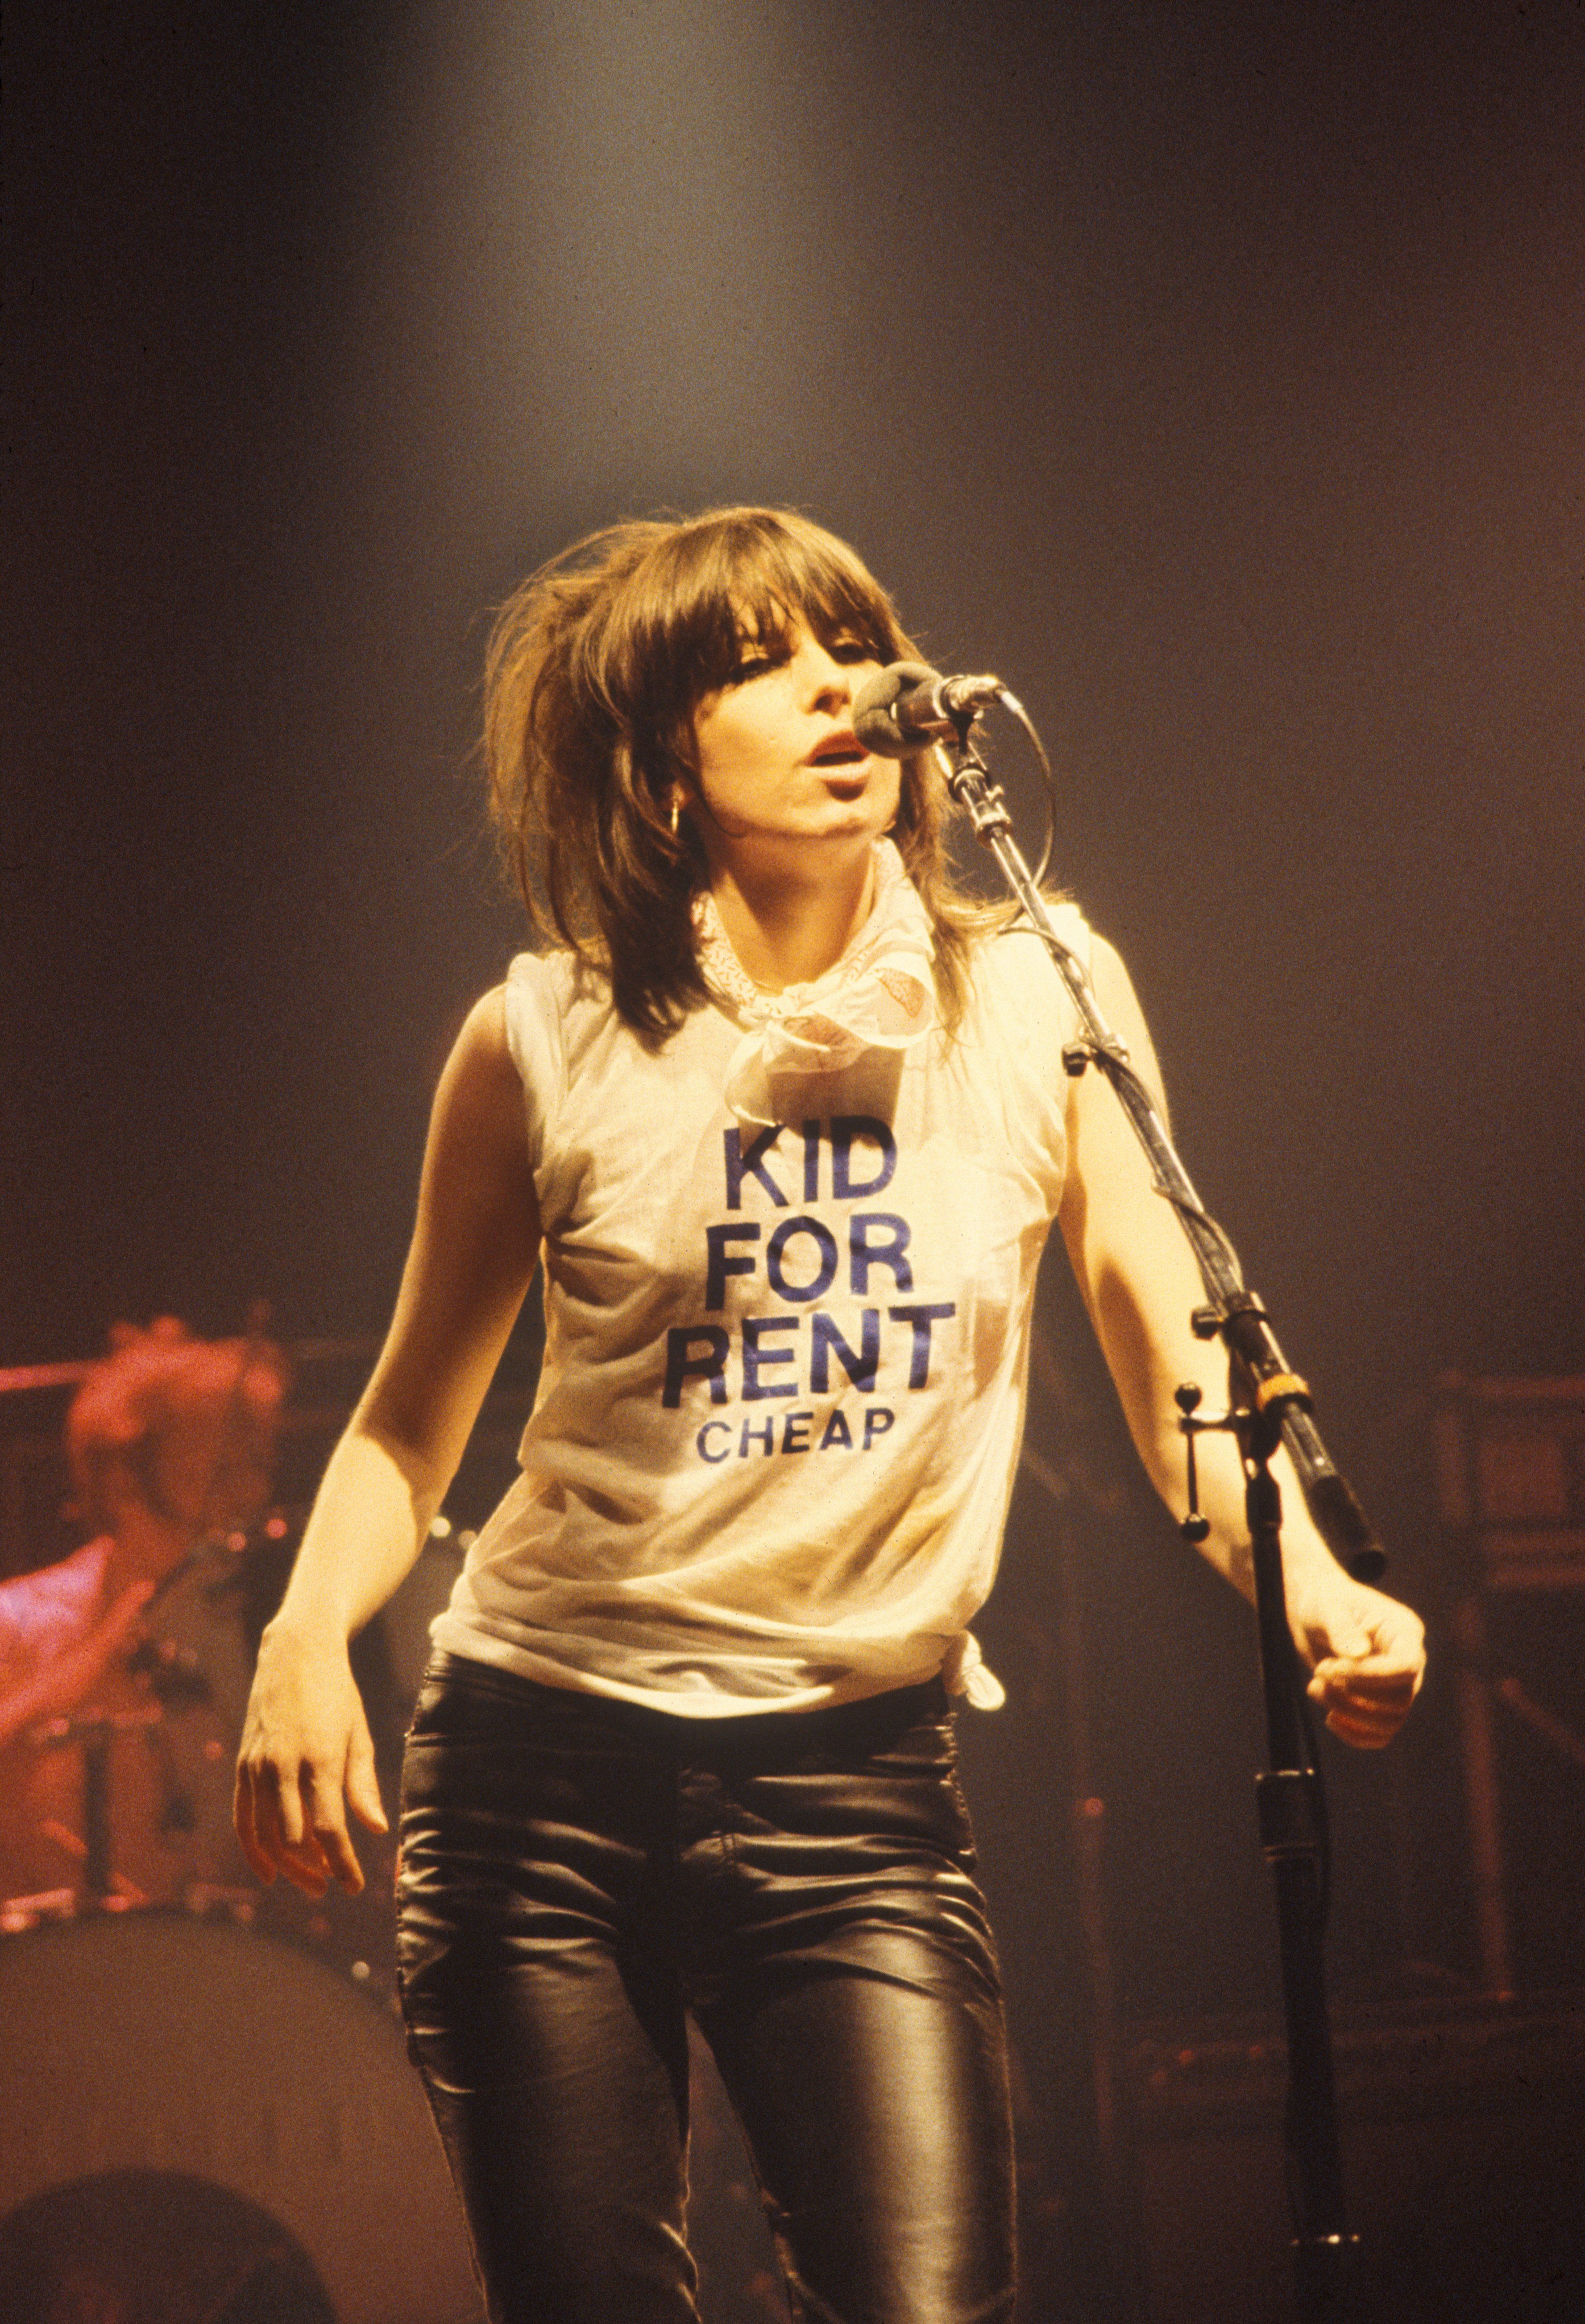 Tracing Chrissie Hynde S Iconic Haircut To Fashion S New Mullet Fever Chrissie Hynde The Pretenders Joan Jett